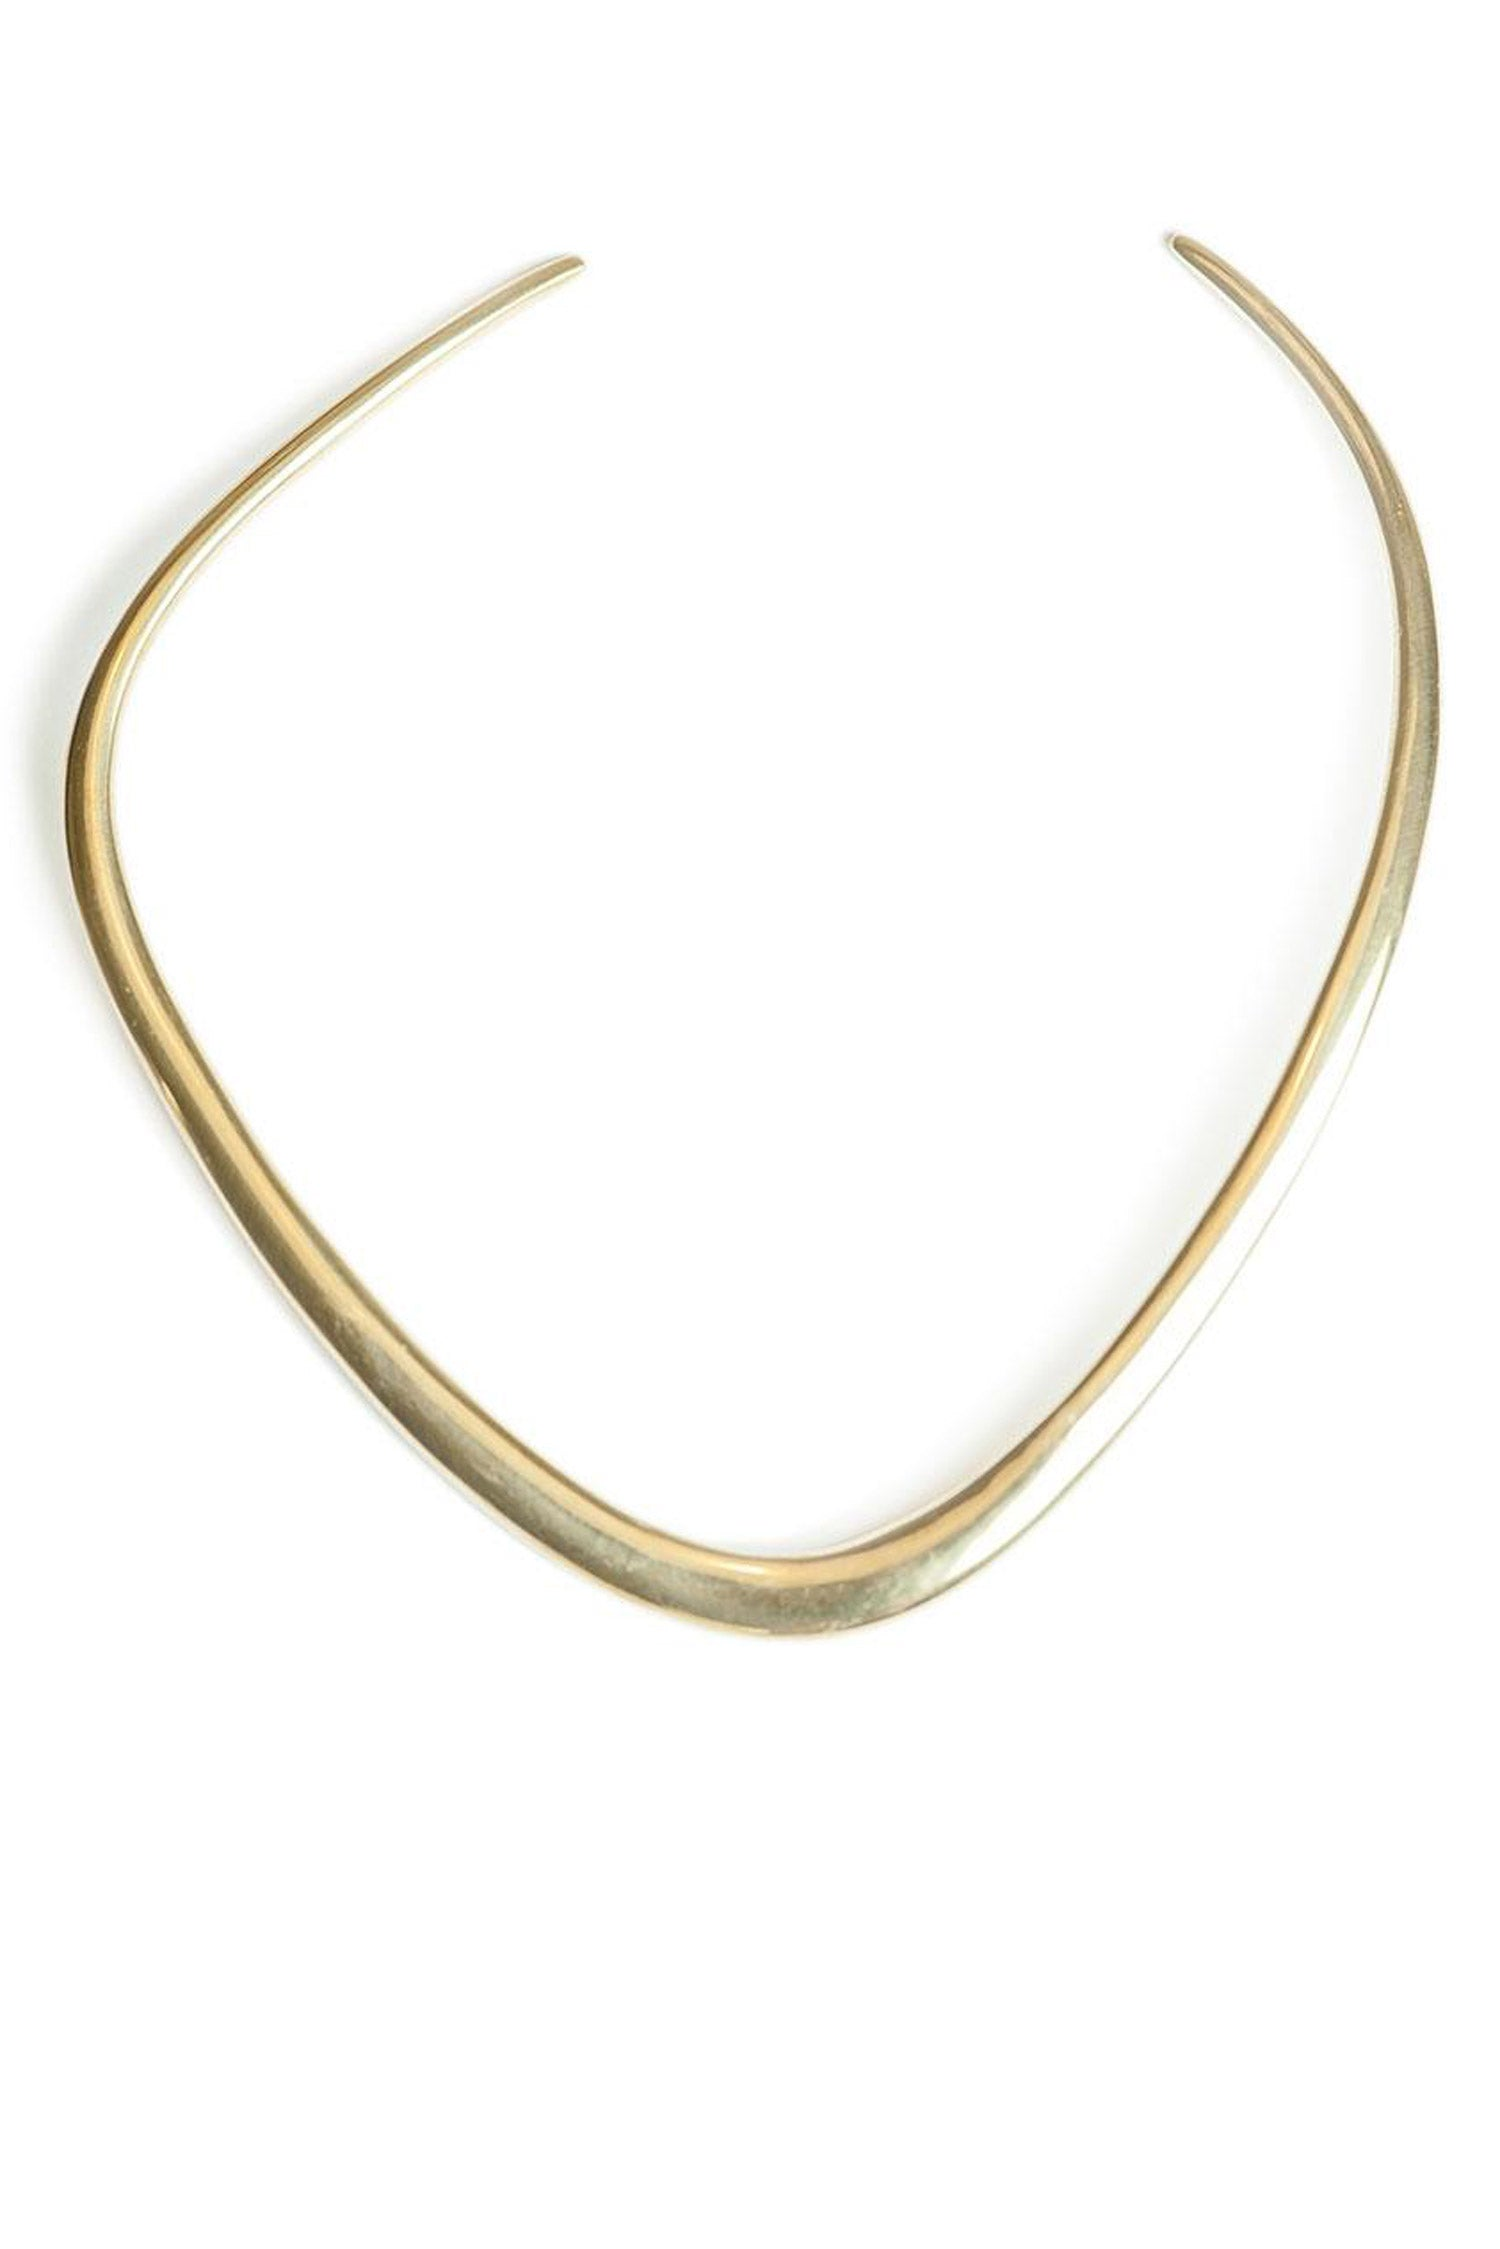 Soko Sabi Choker Necklace | Brass Choker | Ethical Jewelry by Soko